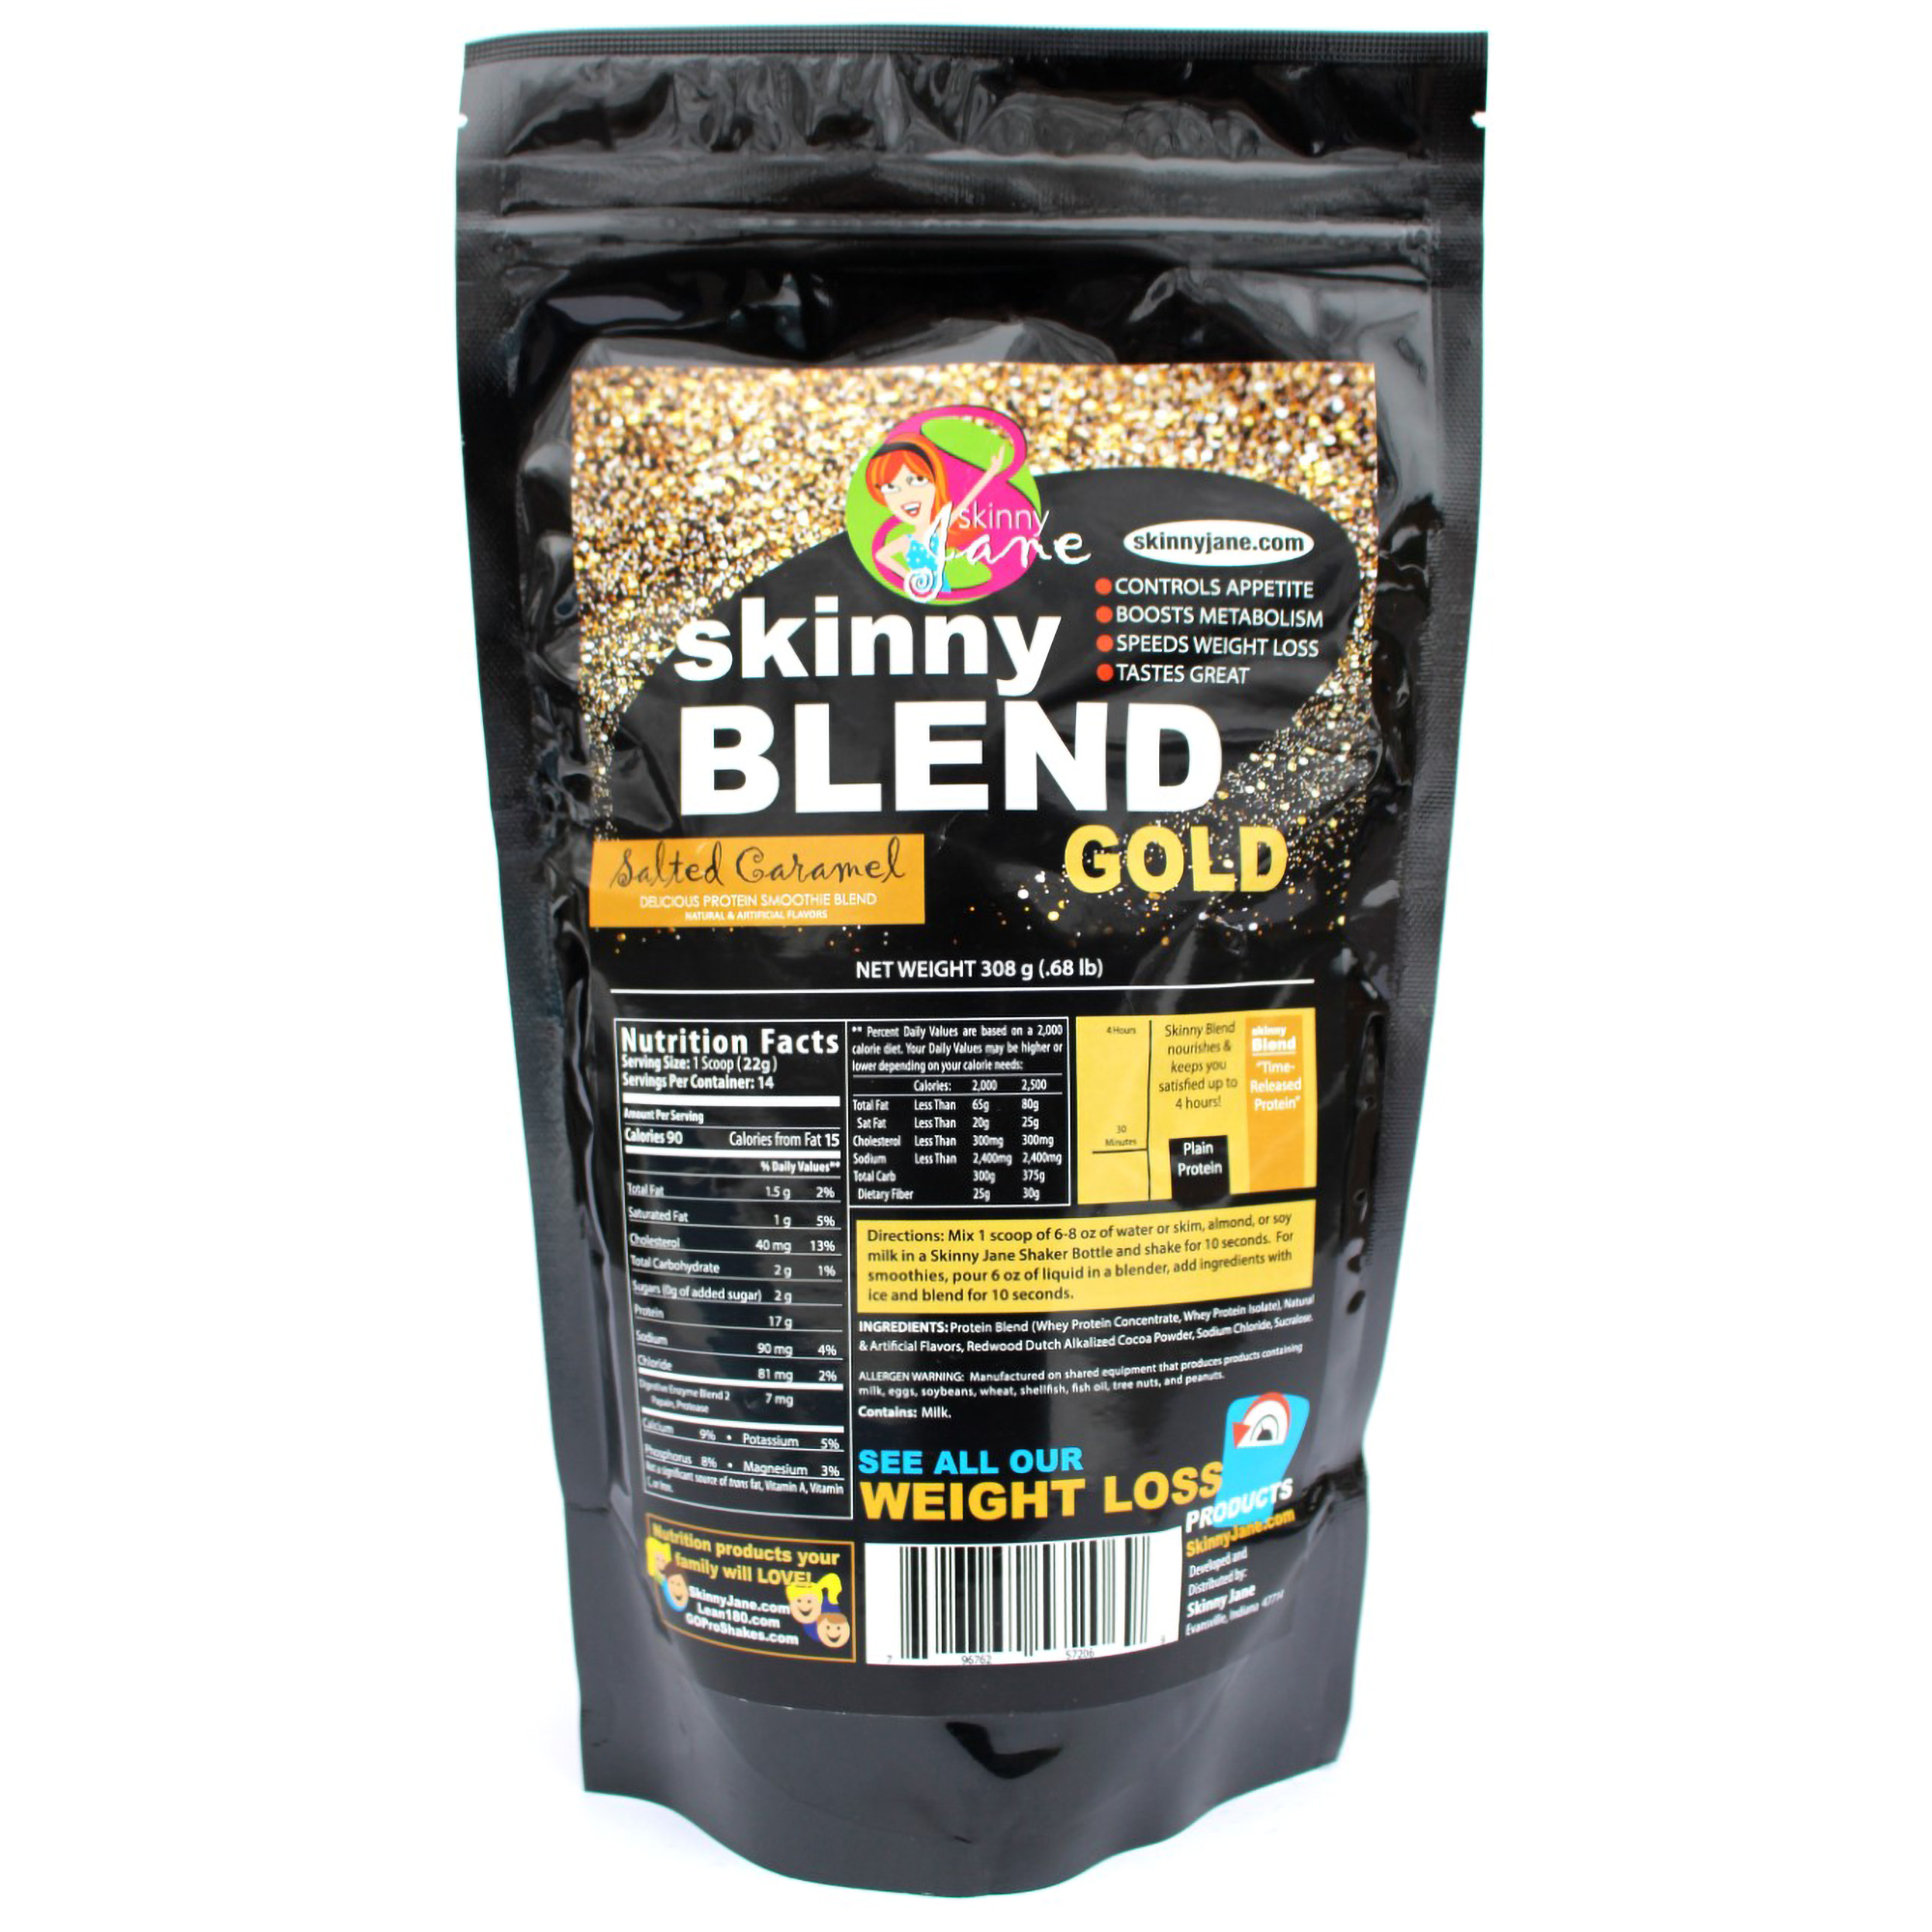 Skinny Blend Gold! Best Tasting Protein Shake for Women ...